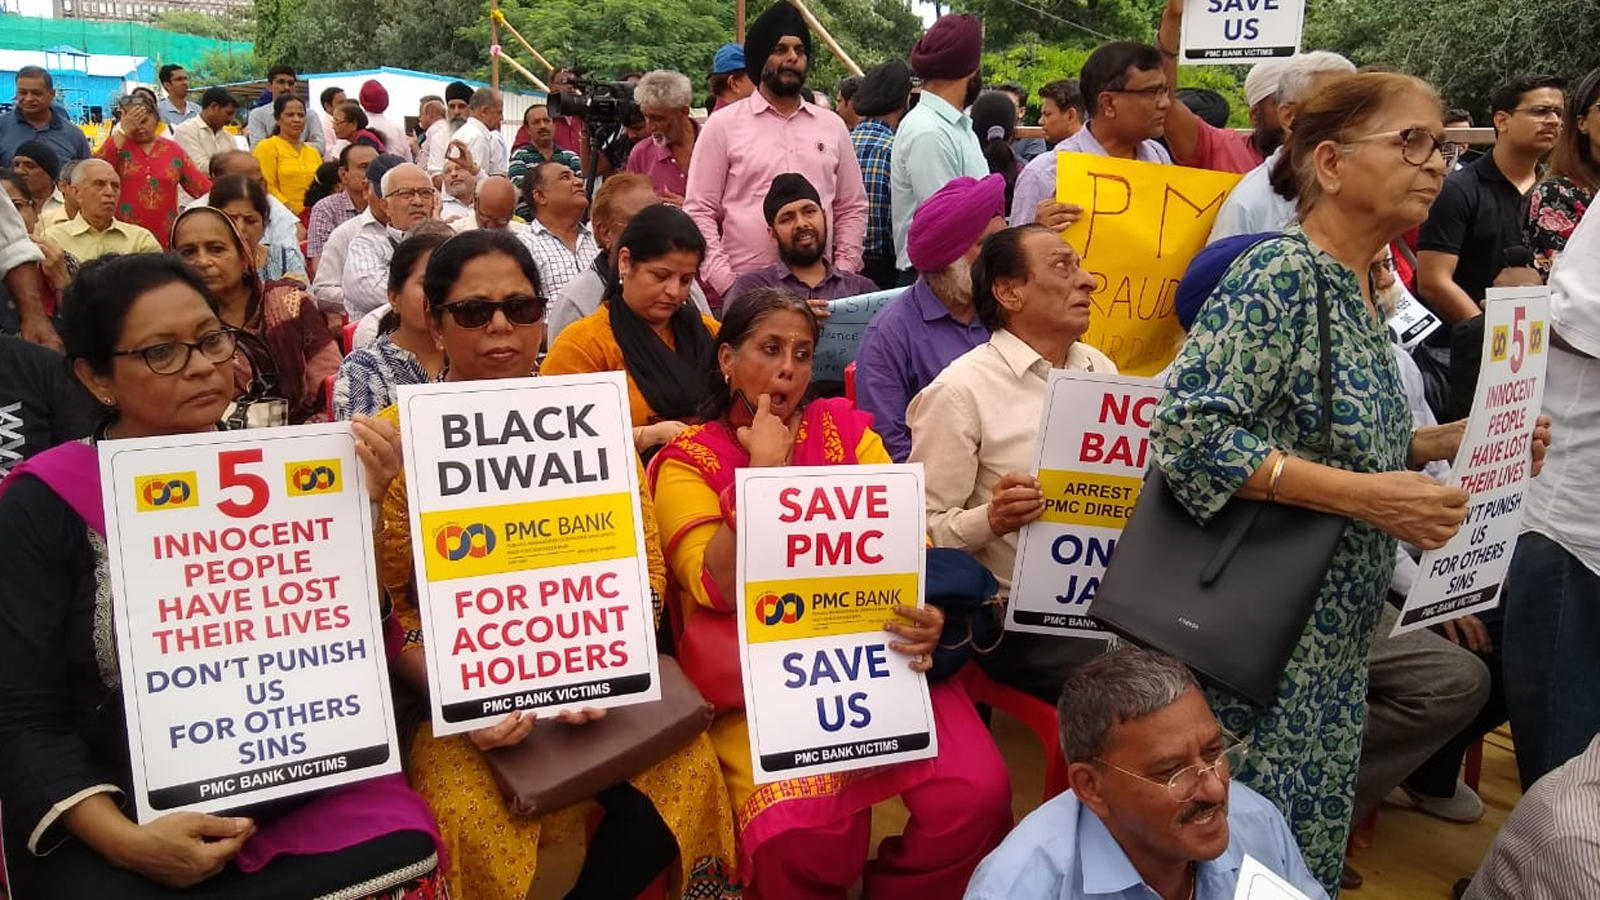 mumbai-pmc-depositors-stage-protest-at-azad-maidan-urge-rbi-to-infuse-funds-as-temporary-relief